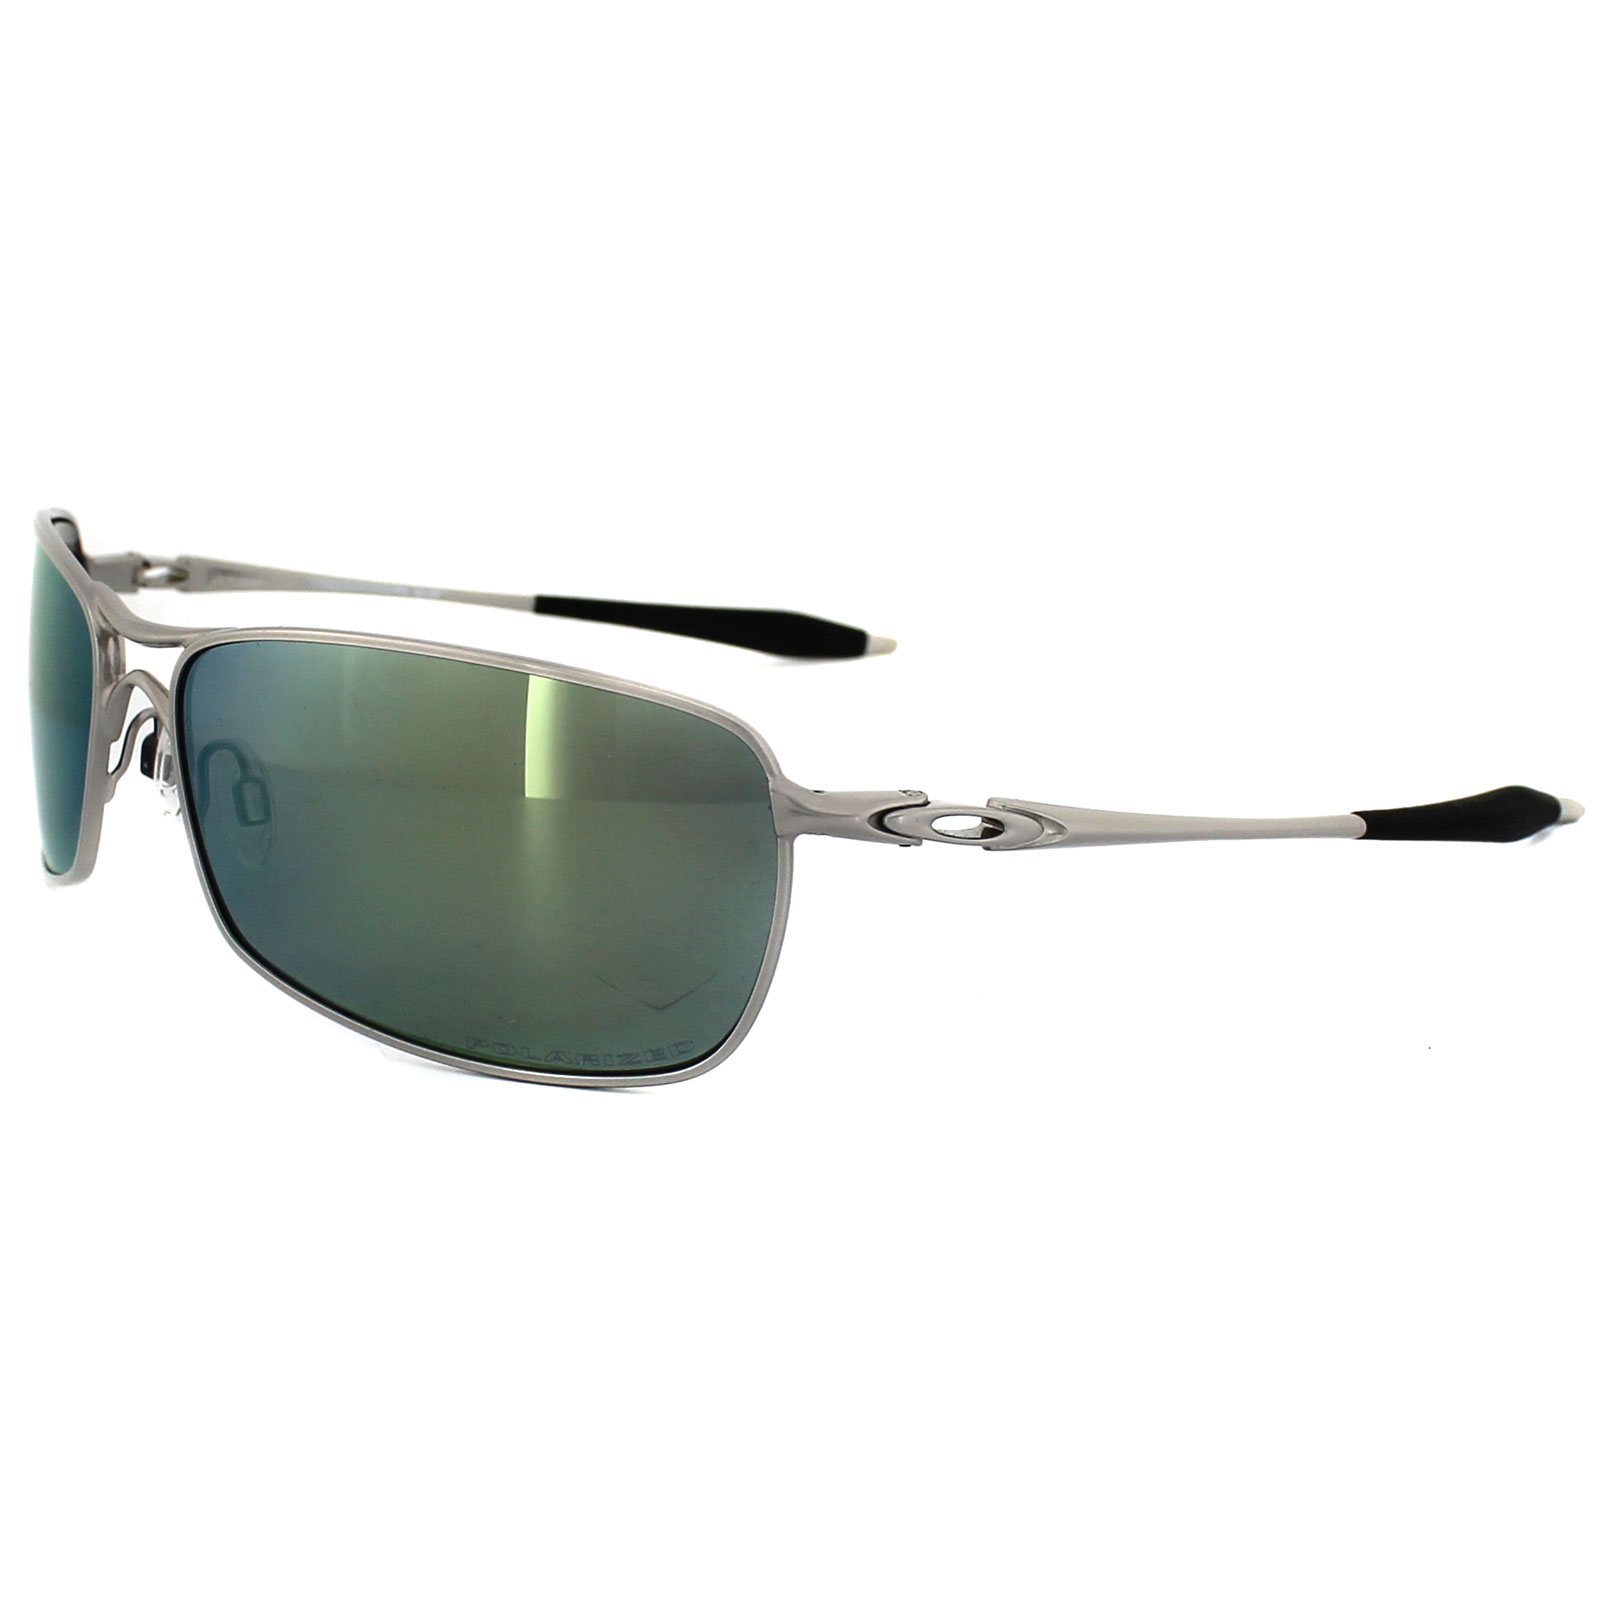 dc4b5fc843 Oakley Crosshair 2.0 Polarized Reviews « Heritage Malta